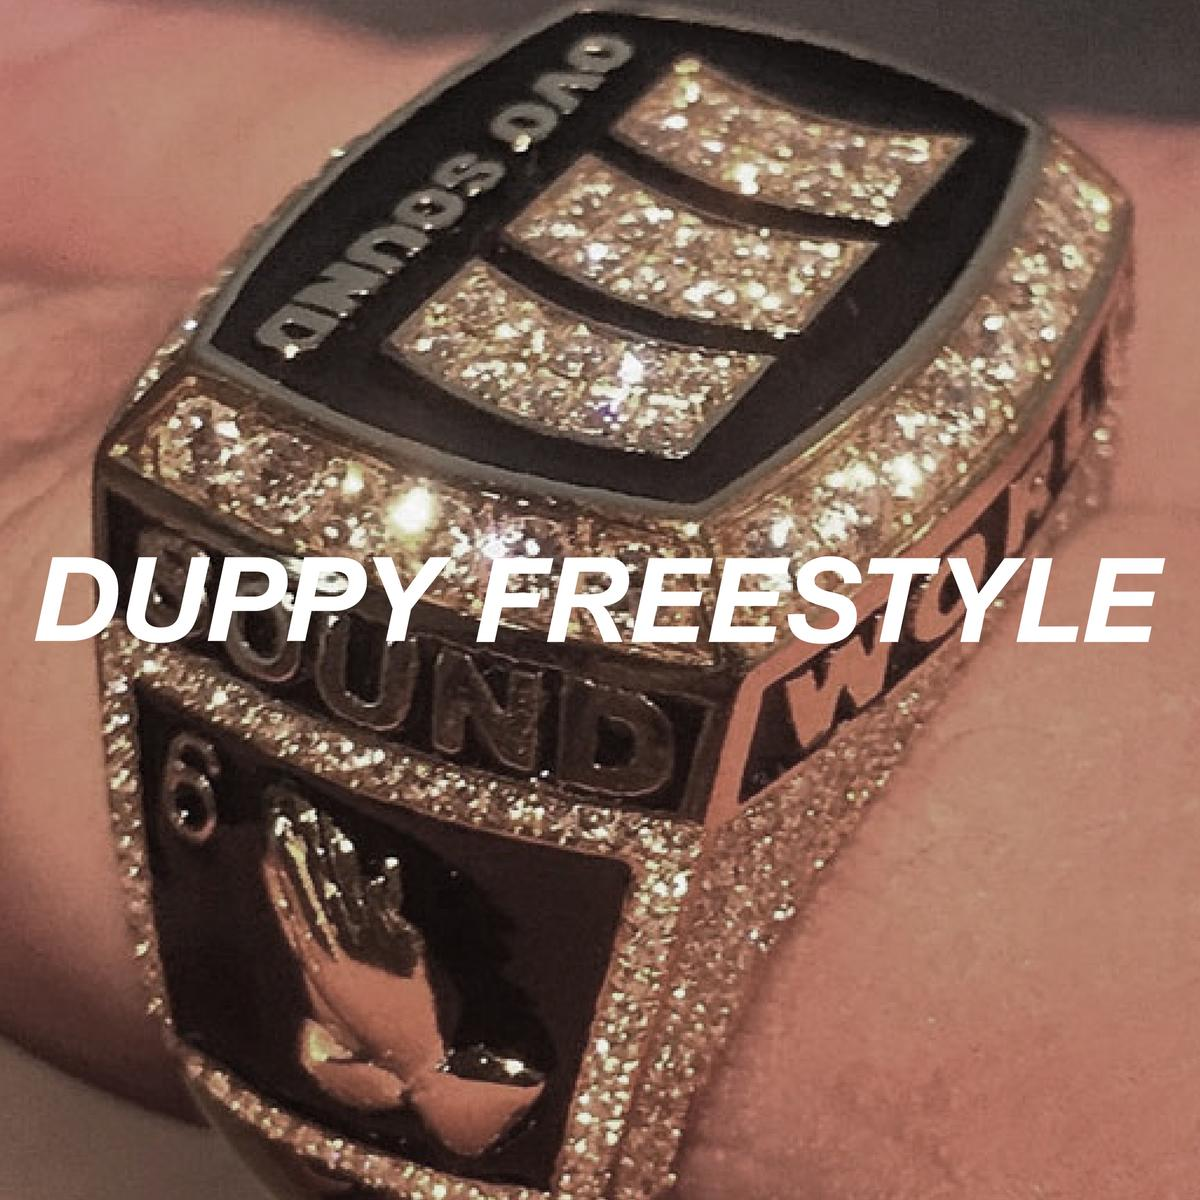 Drake - Duppy Freestyle (Pusha T Diss)